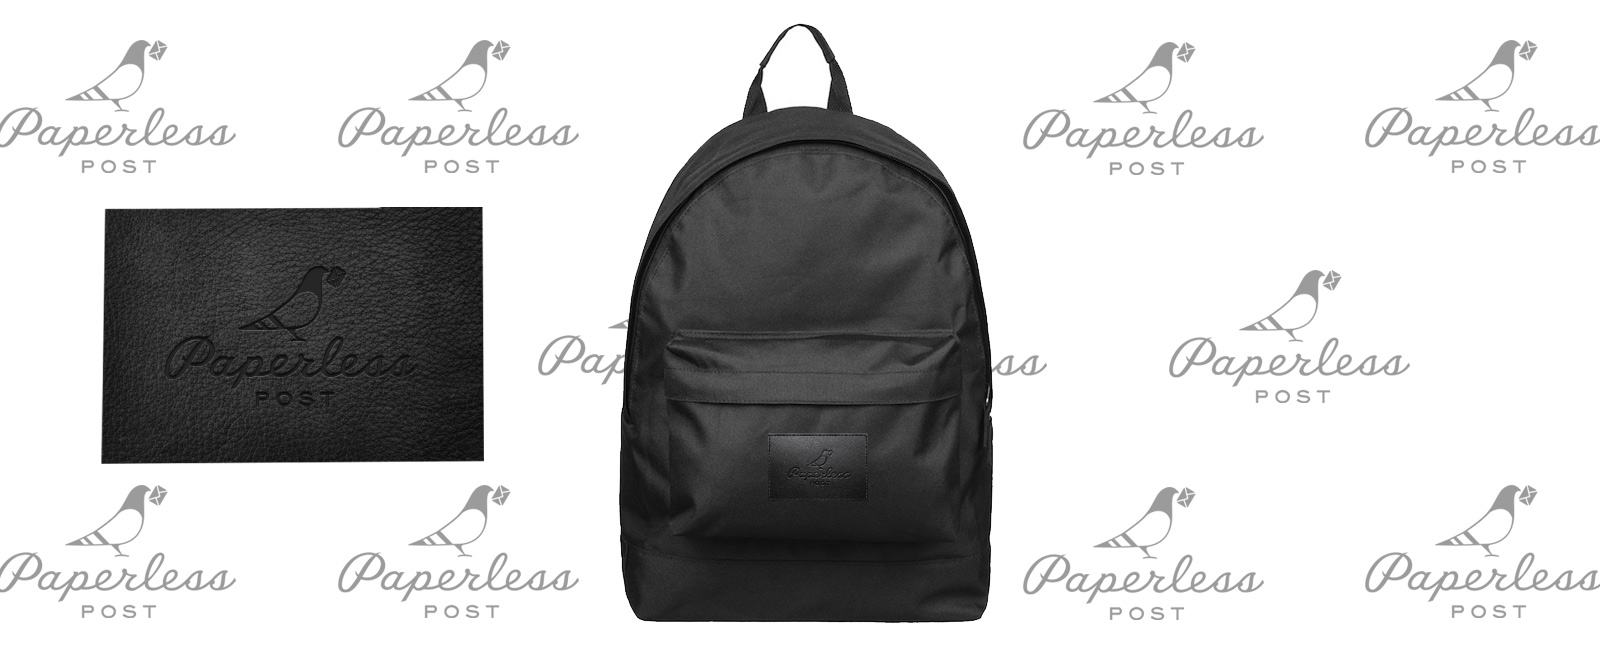 Paperless backpack pattern